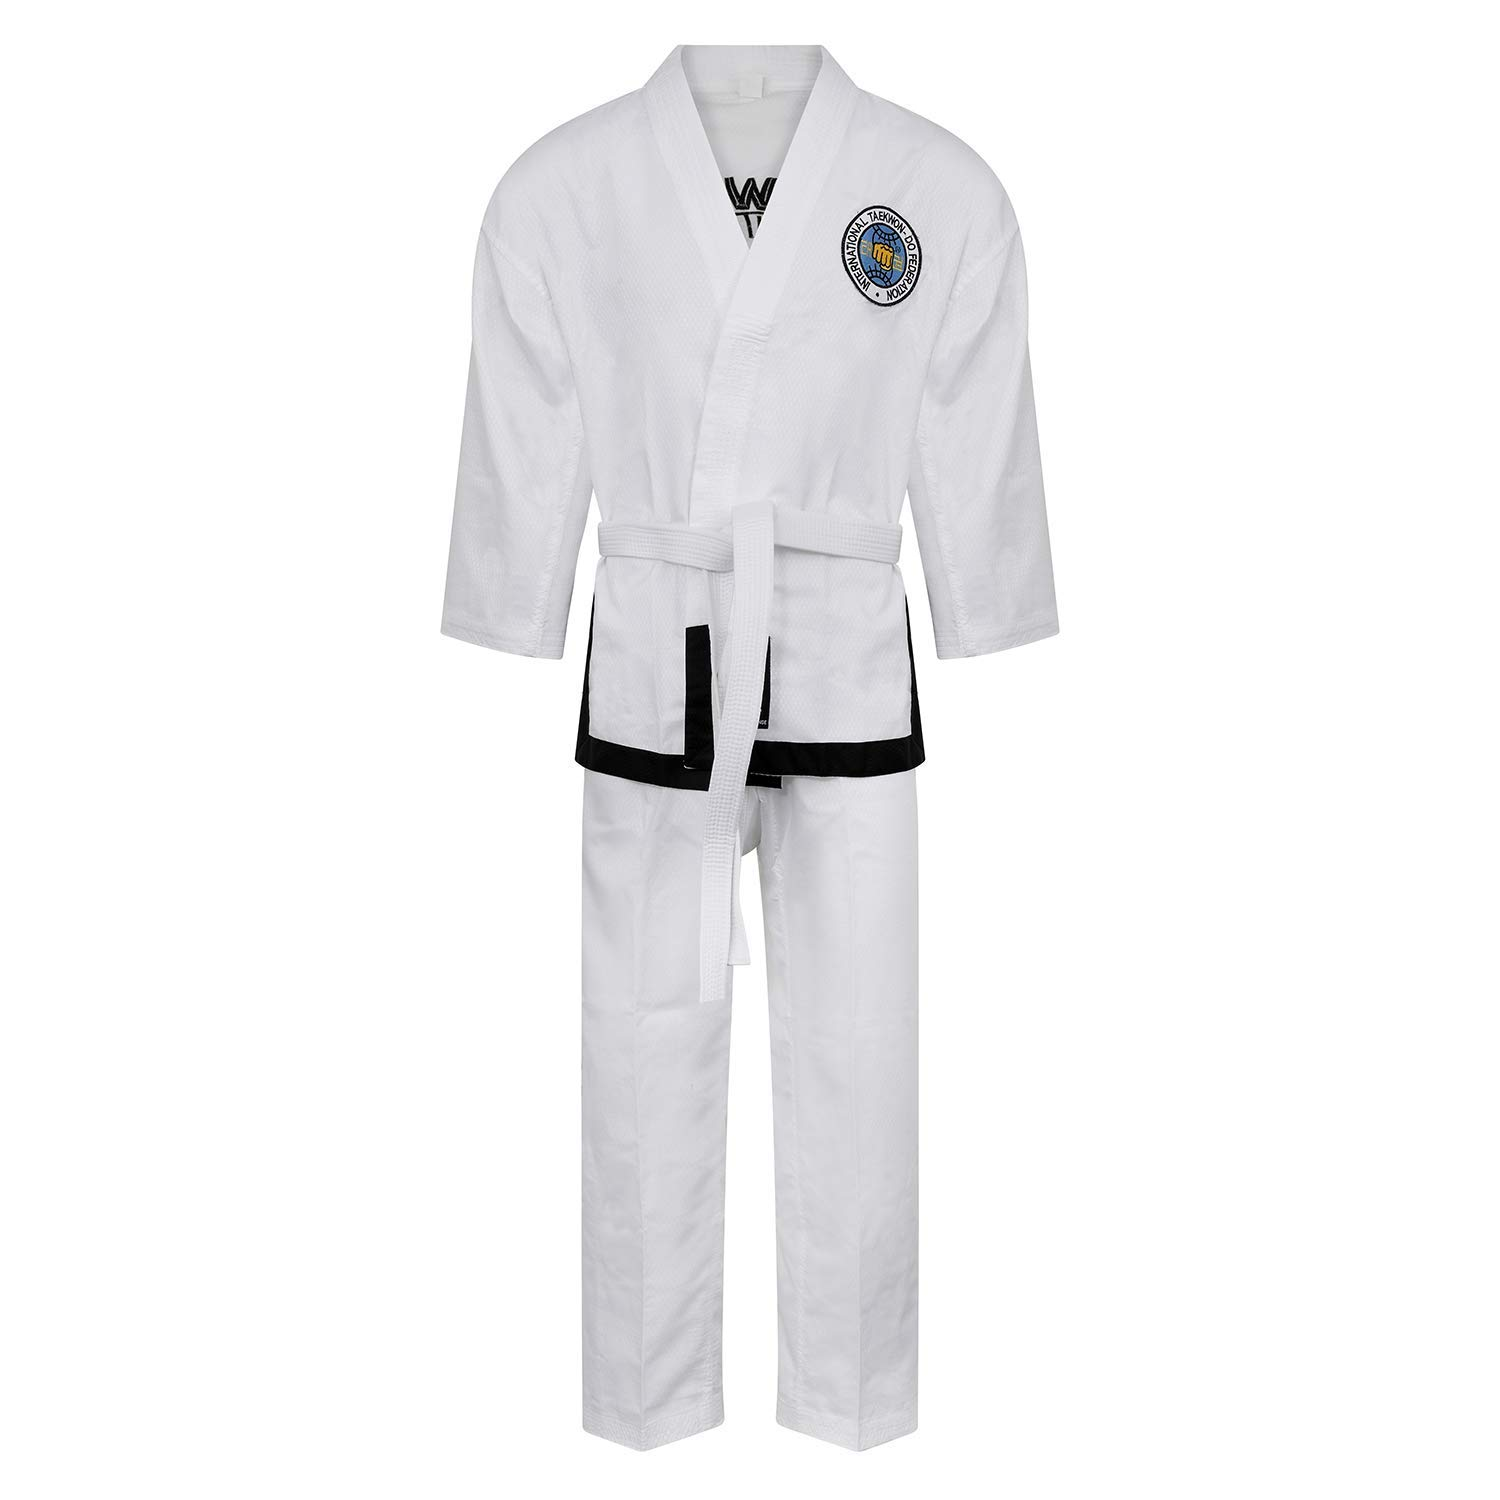 Martial Arts Elite Ultra Light ITF Taekwondo Black Belt Fighter Suit (160cm) by Playwell